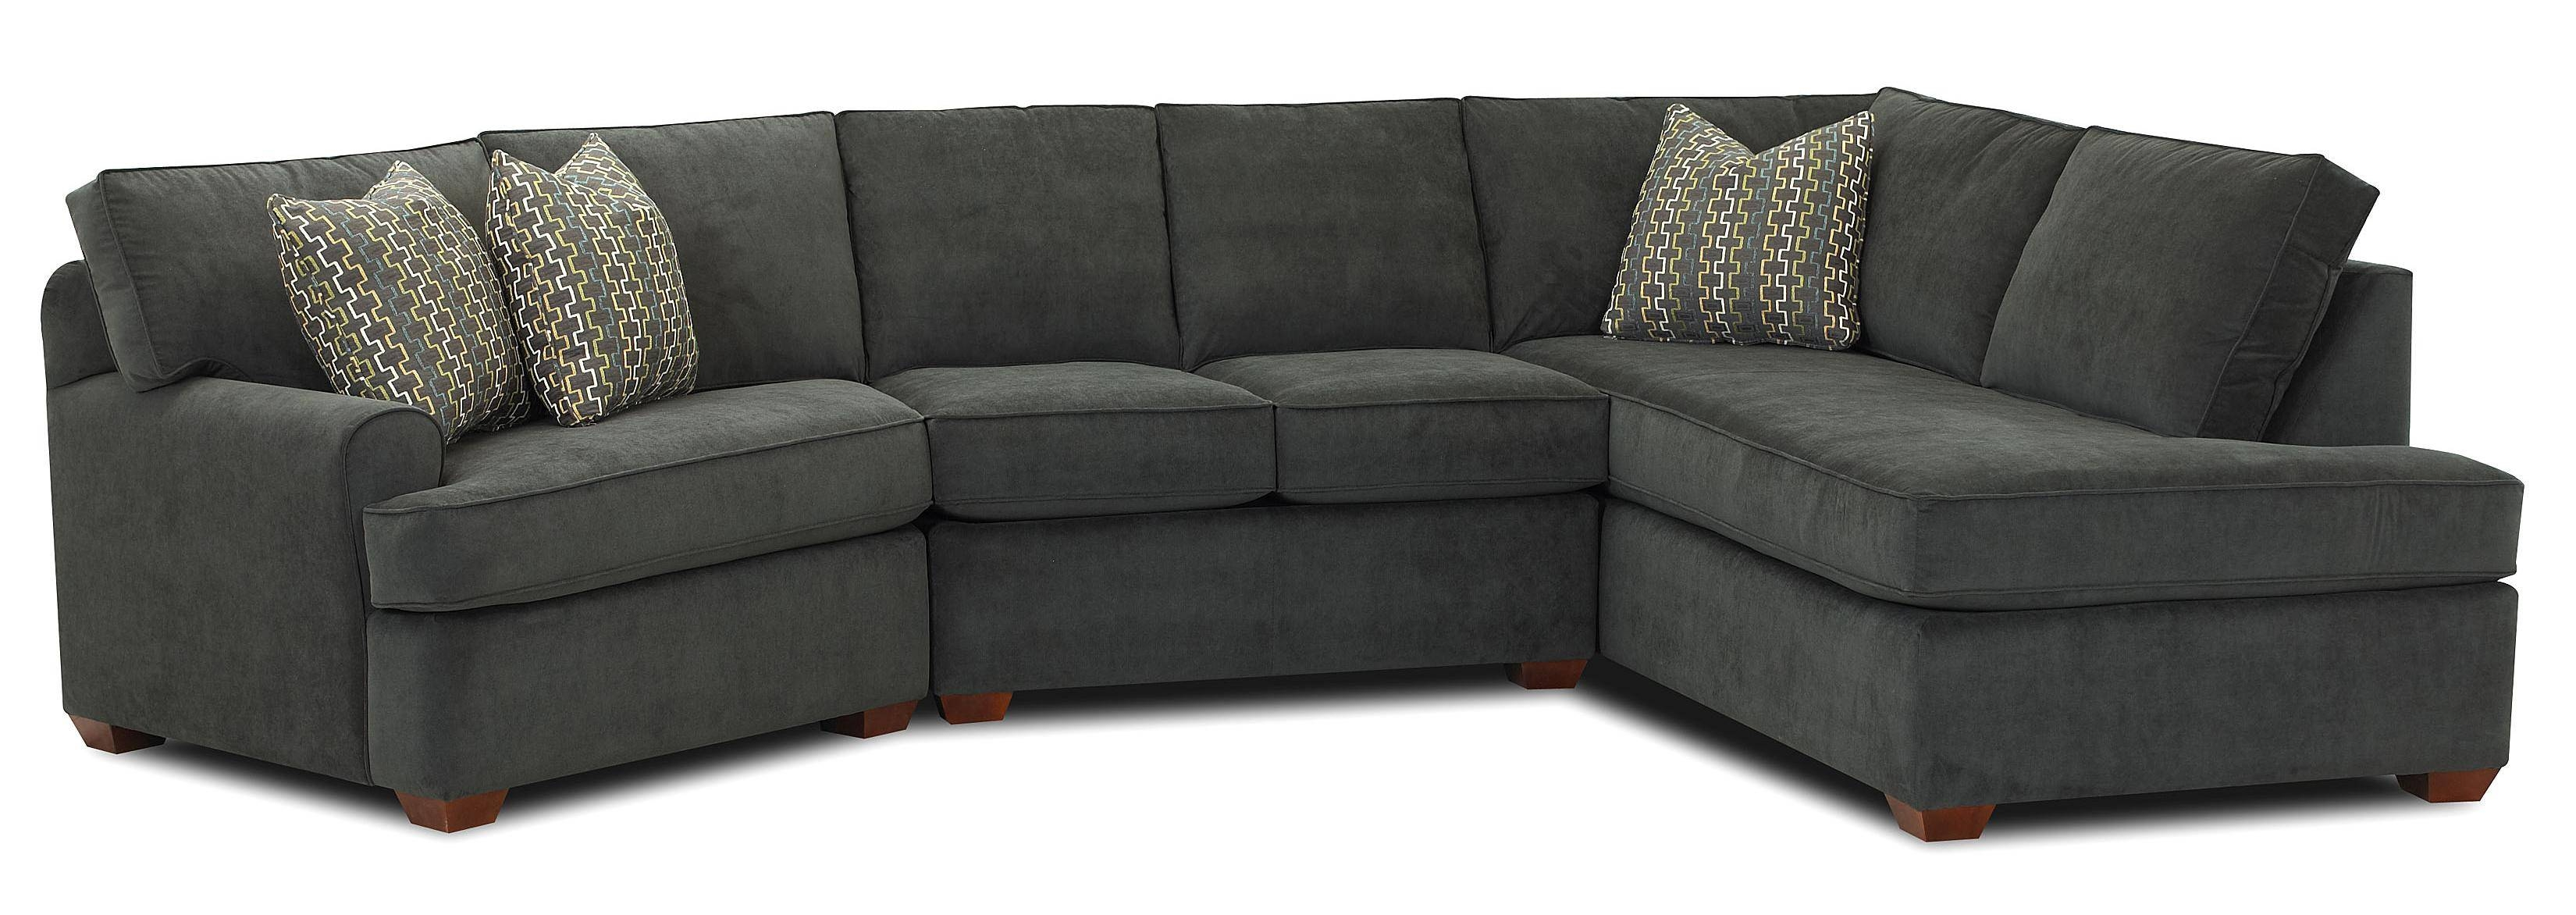 Klaussner Hybrid Sectional Sofa With Right-Facing Sofa Chaise regarding Quality Sectional Sofa (Image 7 of 30)